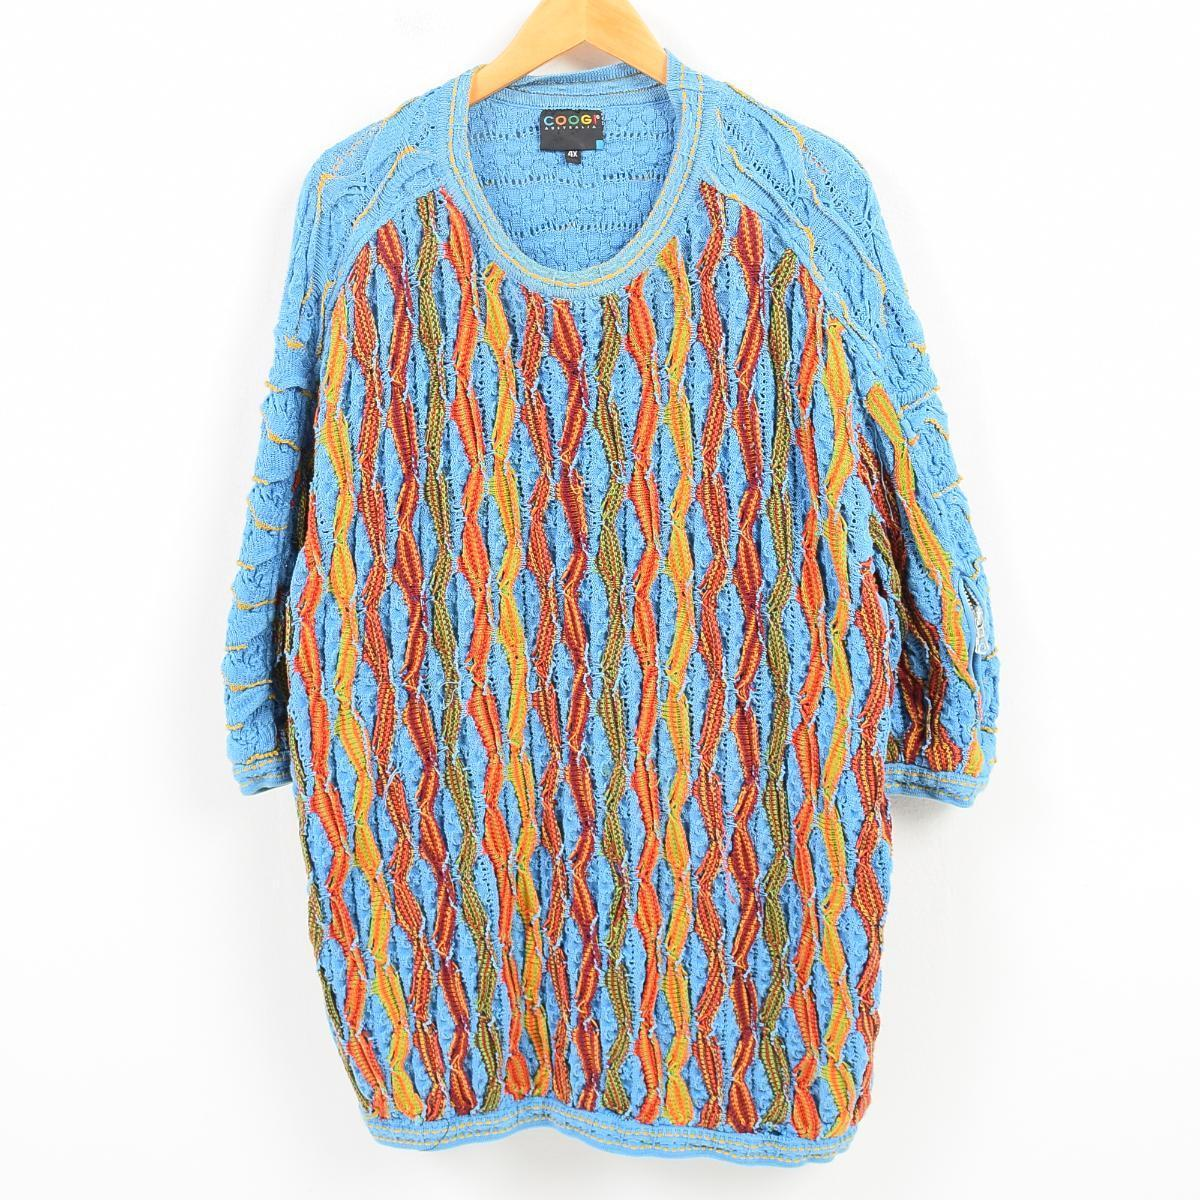 Vintage Clothing Jam Men 4xl Wak6101 In The 90s Made In Cousy